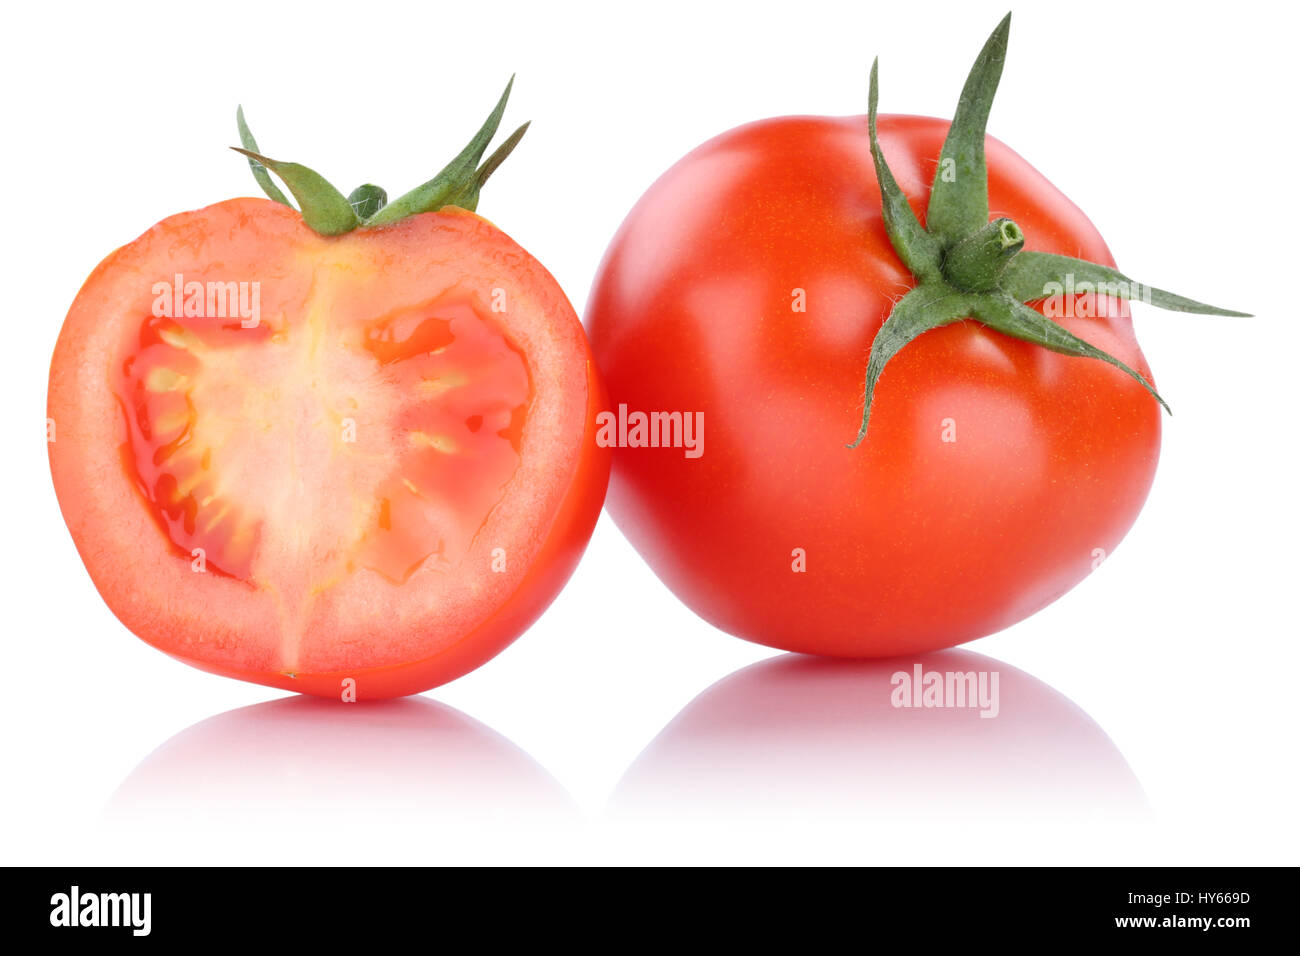 Tomatoes tomato sliced vegetable isolated on a white background - Stock Image